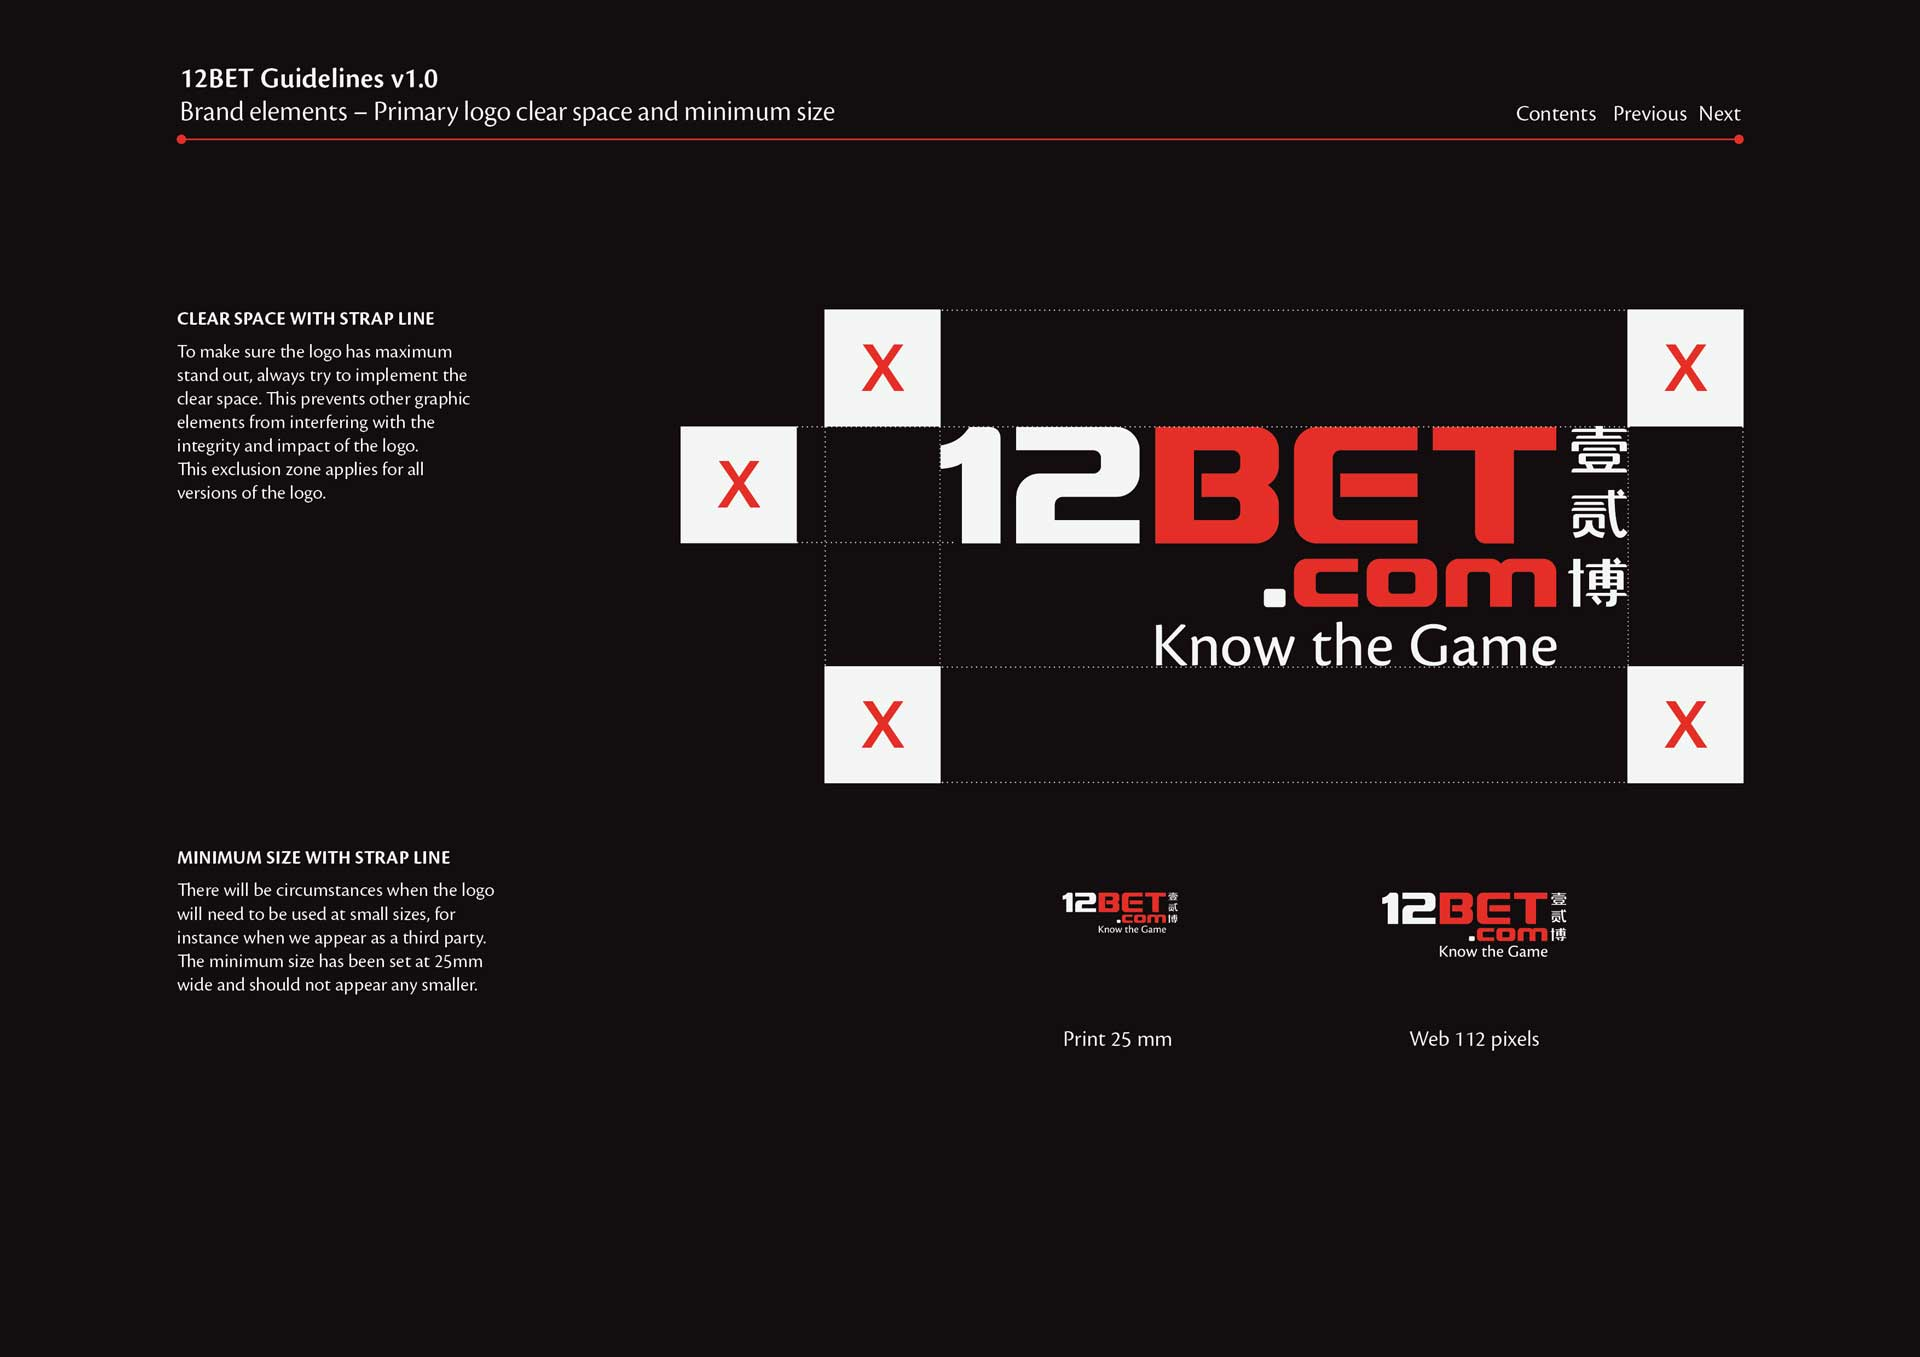 12bet-sports-betting-brand-guidelines-2